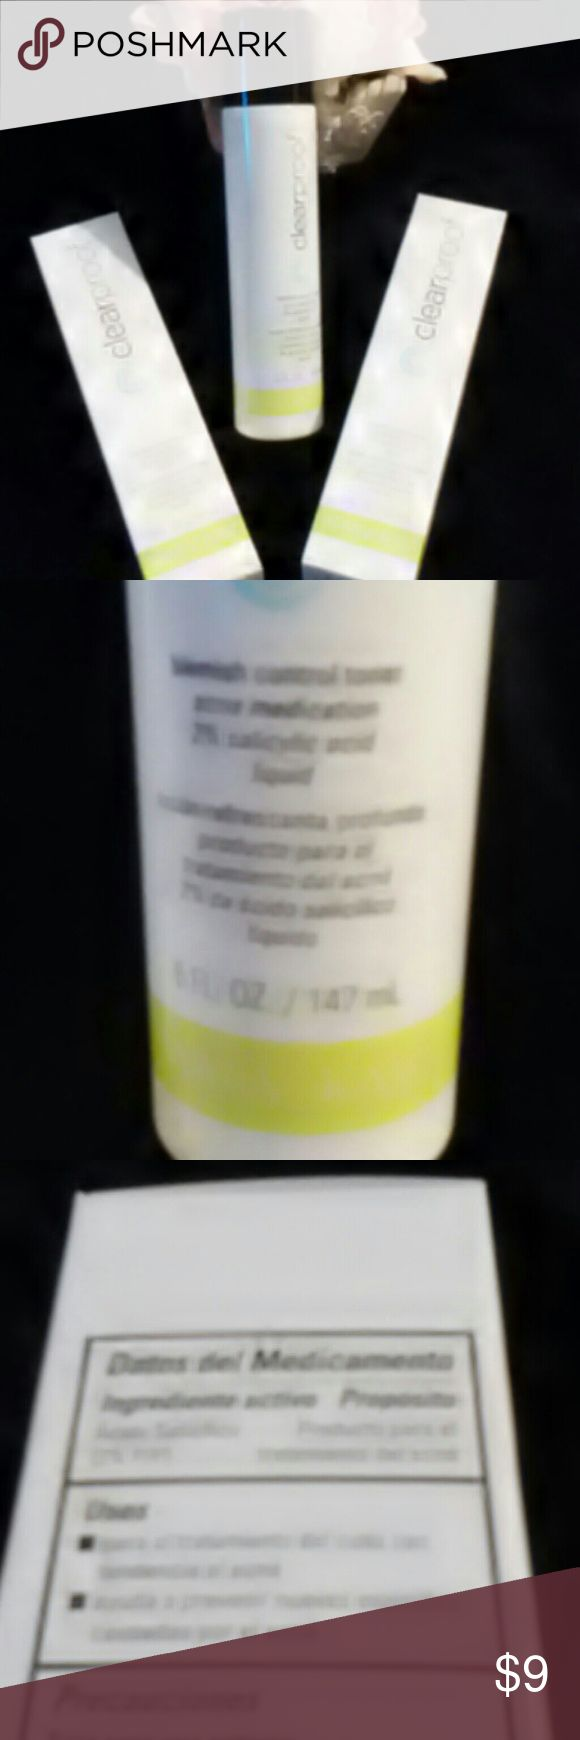 NIB Mary Kay Clearproof Acne Blemish Control Toner New in Box MK Acne Blemish Control Toner 5 fluid ounces. 2% Salicylic Acid Acne Medication. See other Clearproof products in my closet. Bundle and save. One Shipping fee! Mary Kay Makeup